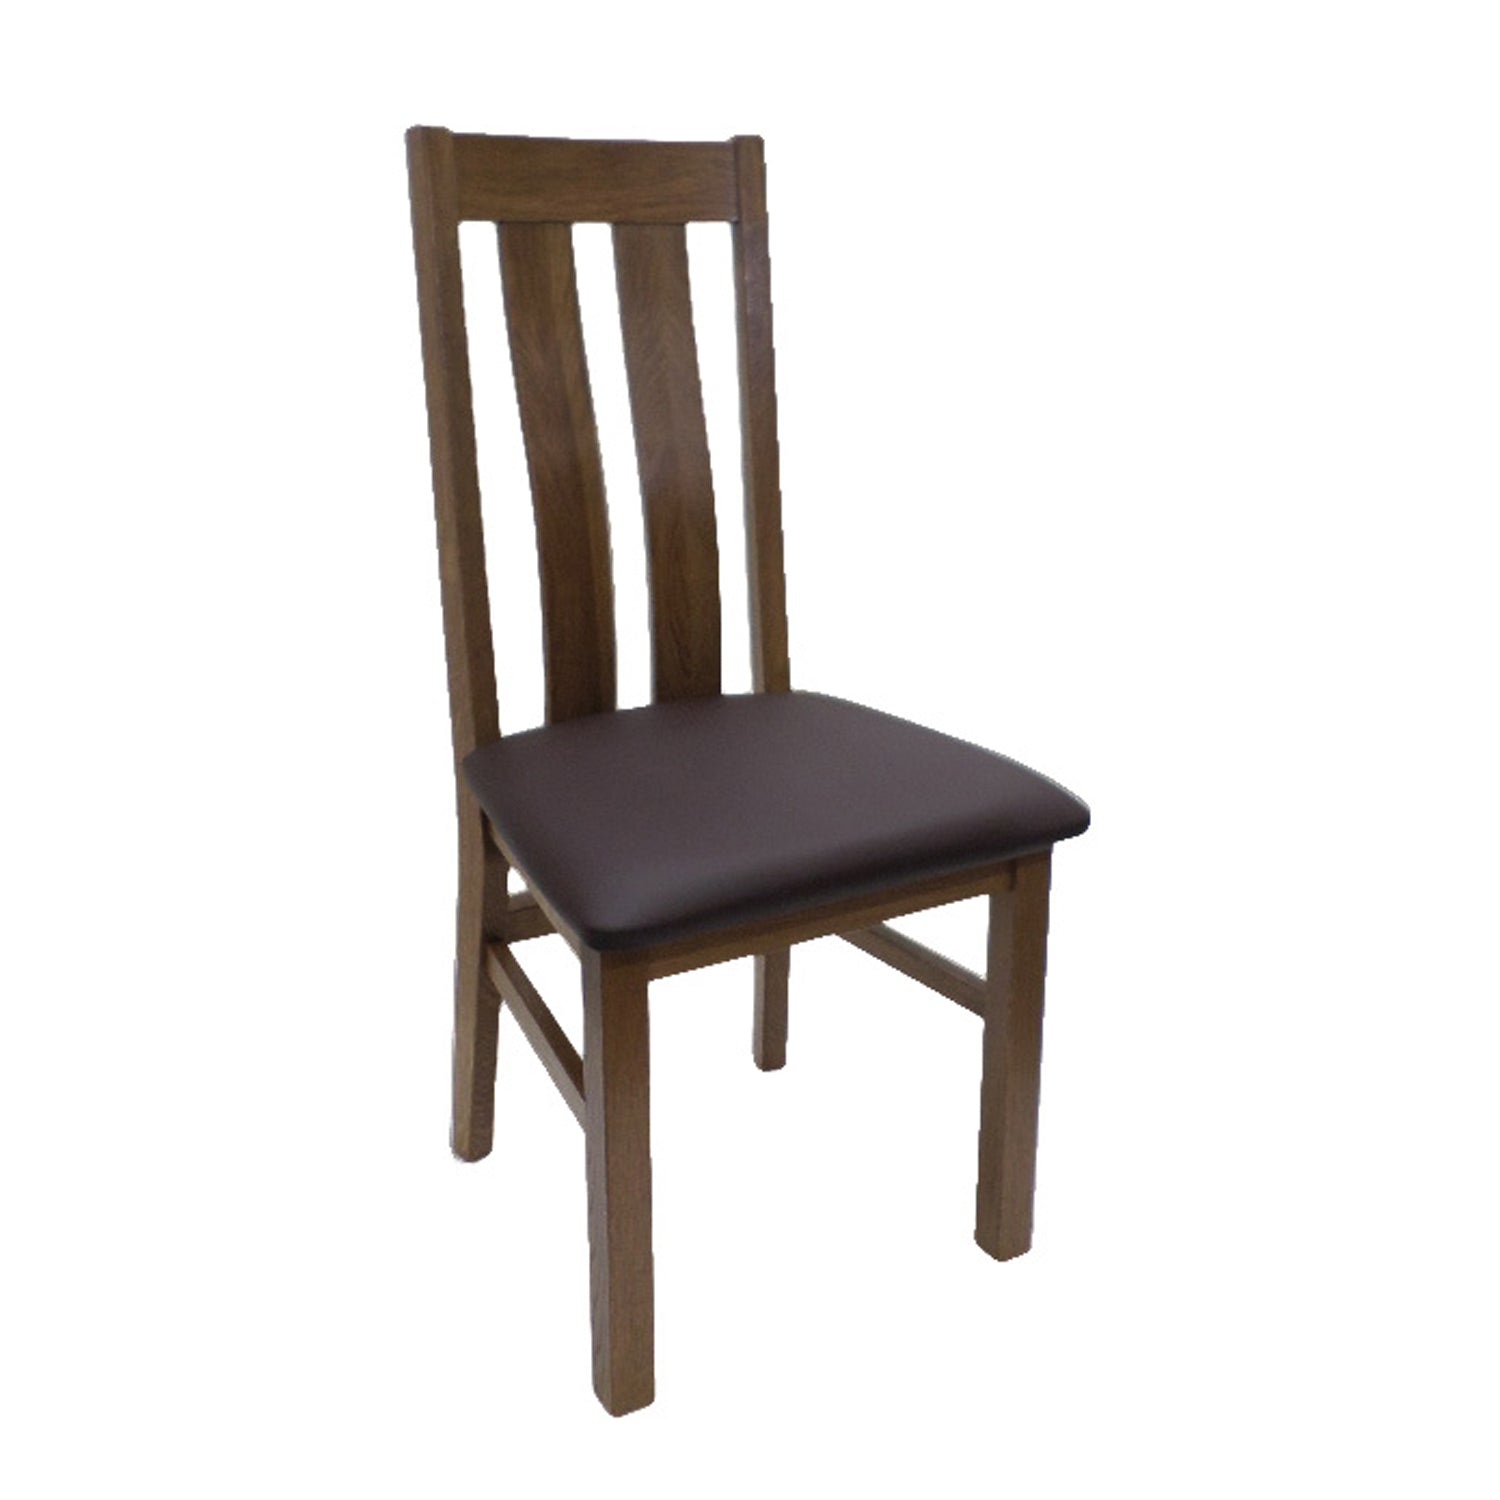 Auvergne Solid Oak Dining Chair - Twin Slat